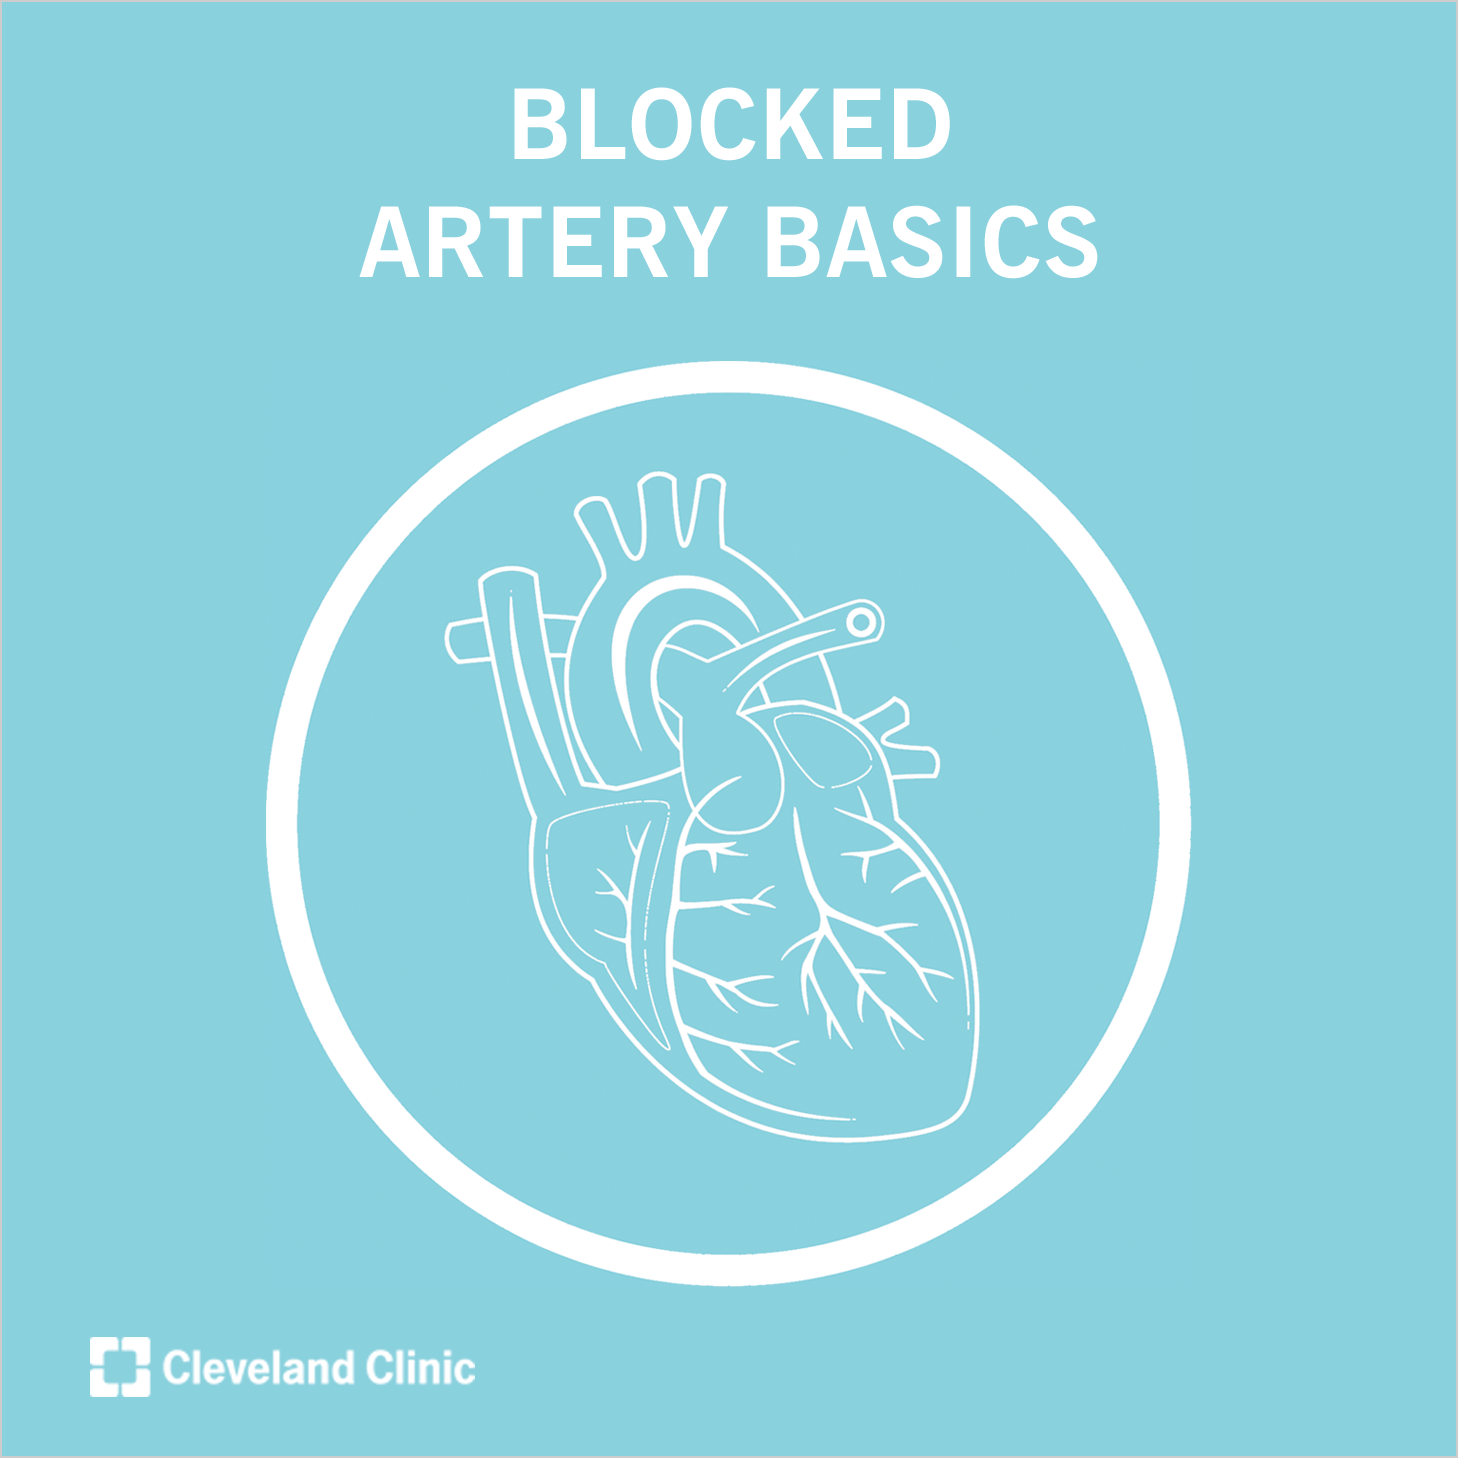 Blocked Arteries: When to Call for Help (Video) Umesh N. Khot, MD, breaks down the basics of seriously blocked arteries.    Learn warning signs and when to call for help.Umesh N. Khot, MD, breaks down the basics of seriously blocked arteries.    Learn warning signs and when to call for help.